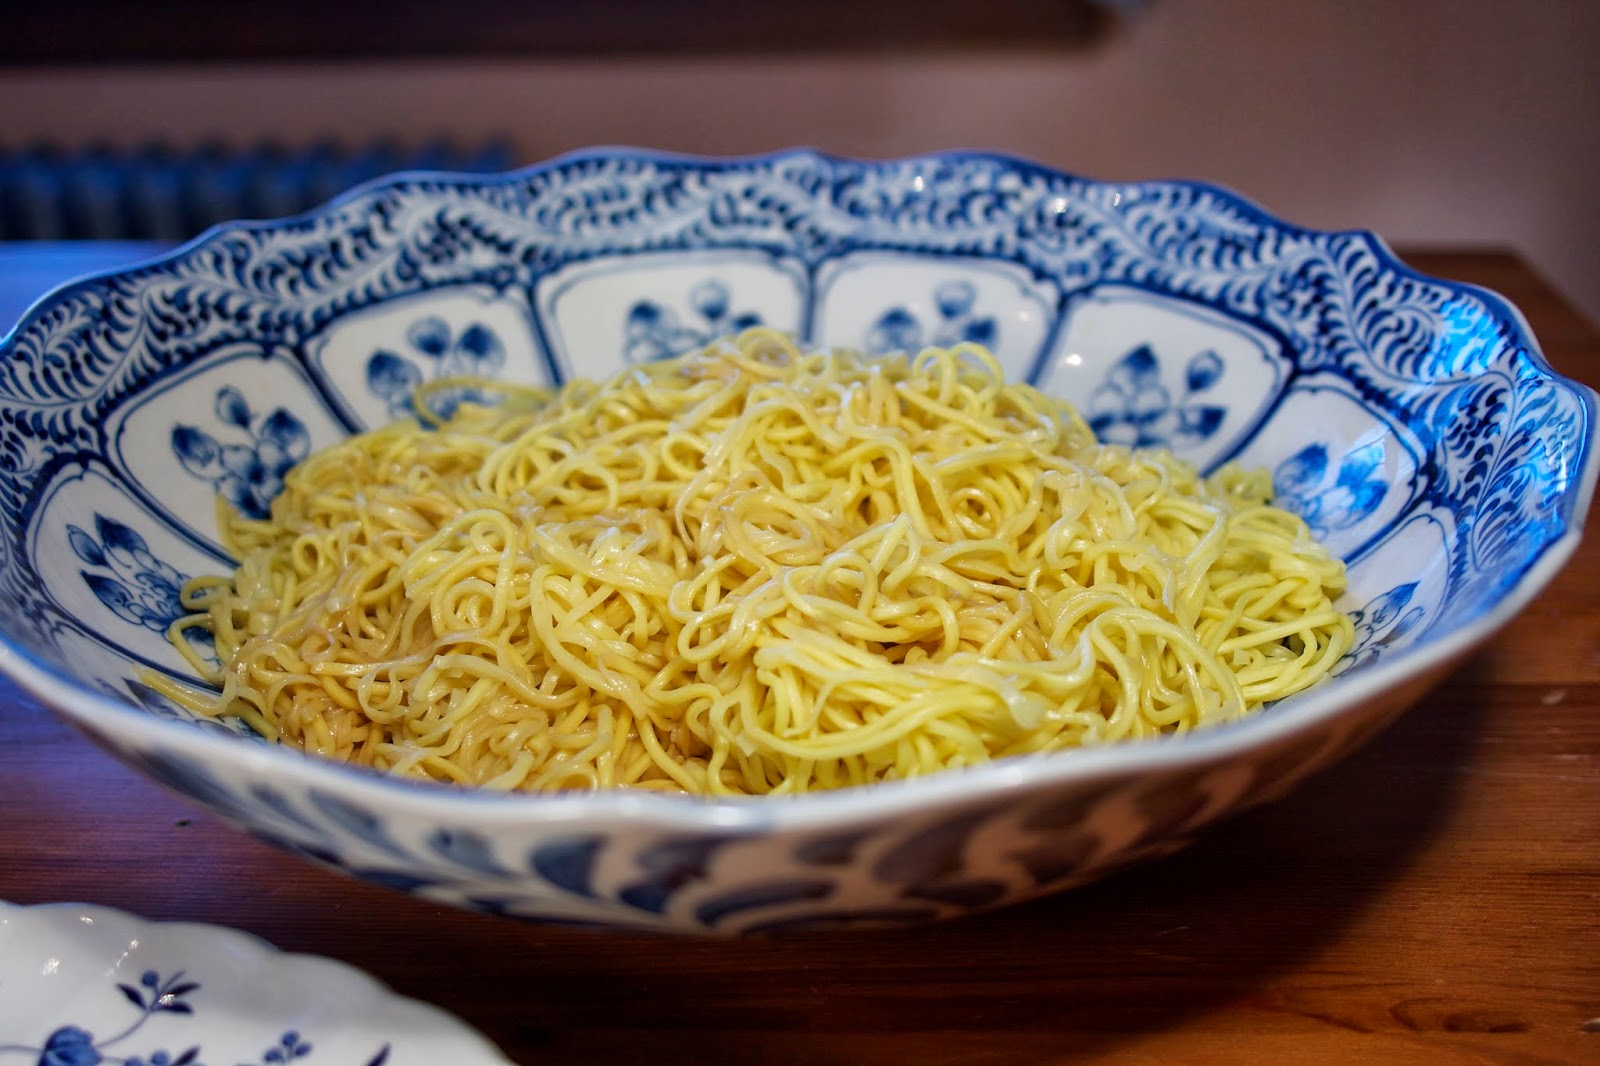 Chow Mein Noodles: simplelivingeating.com